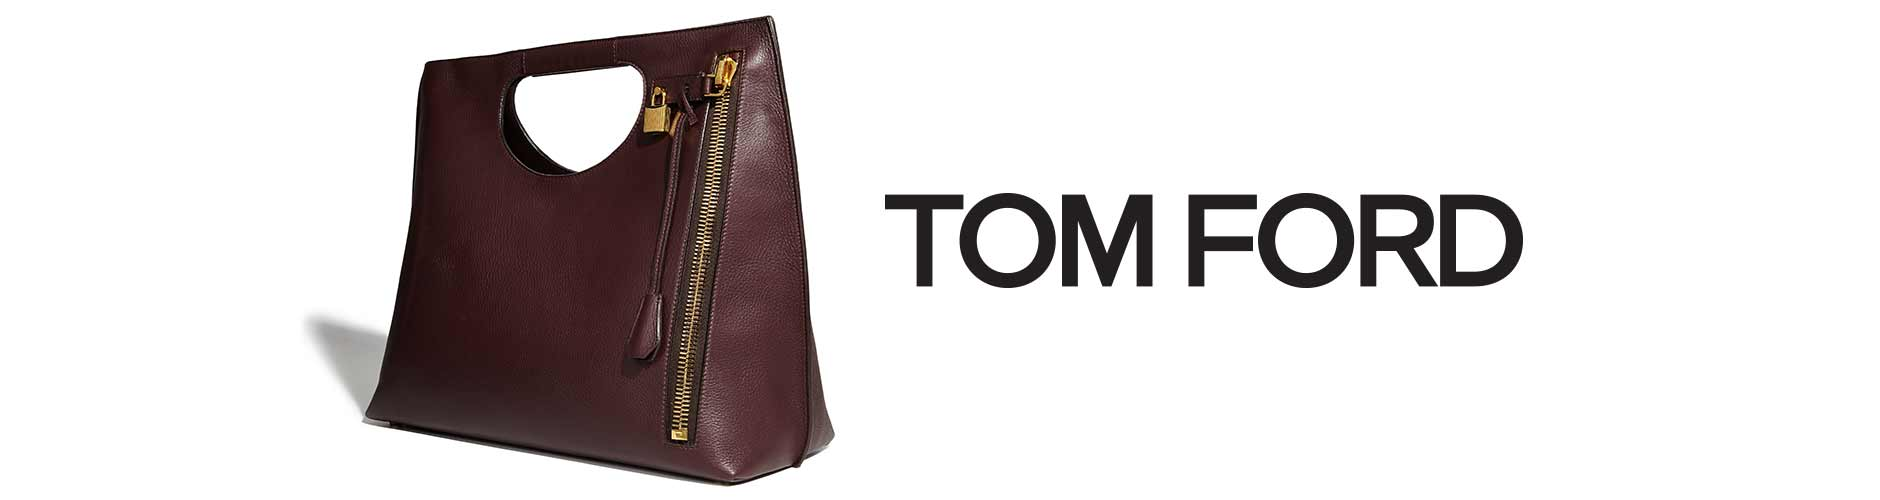 Tom Ford Handbags